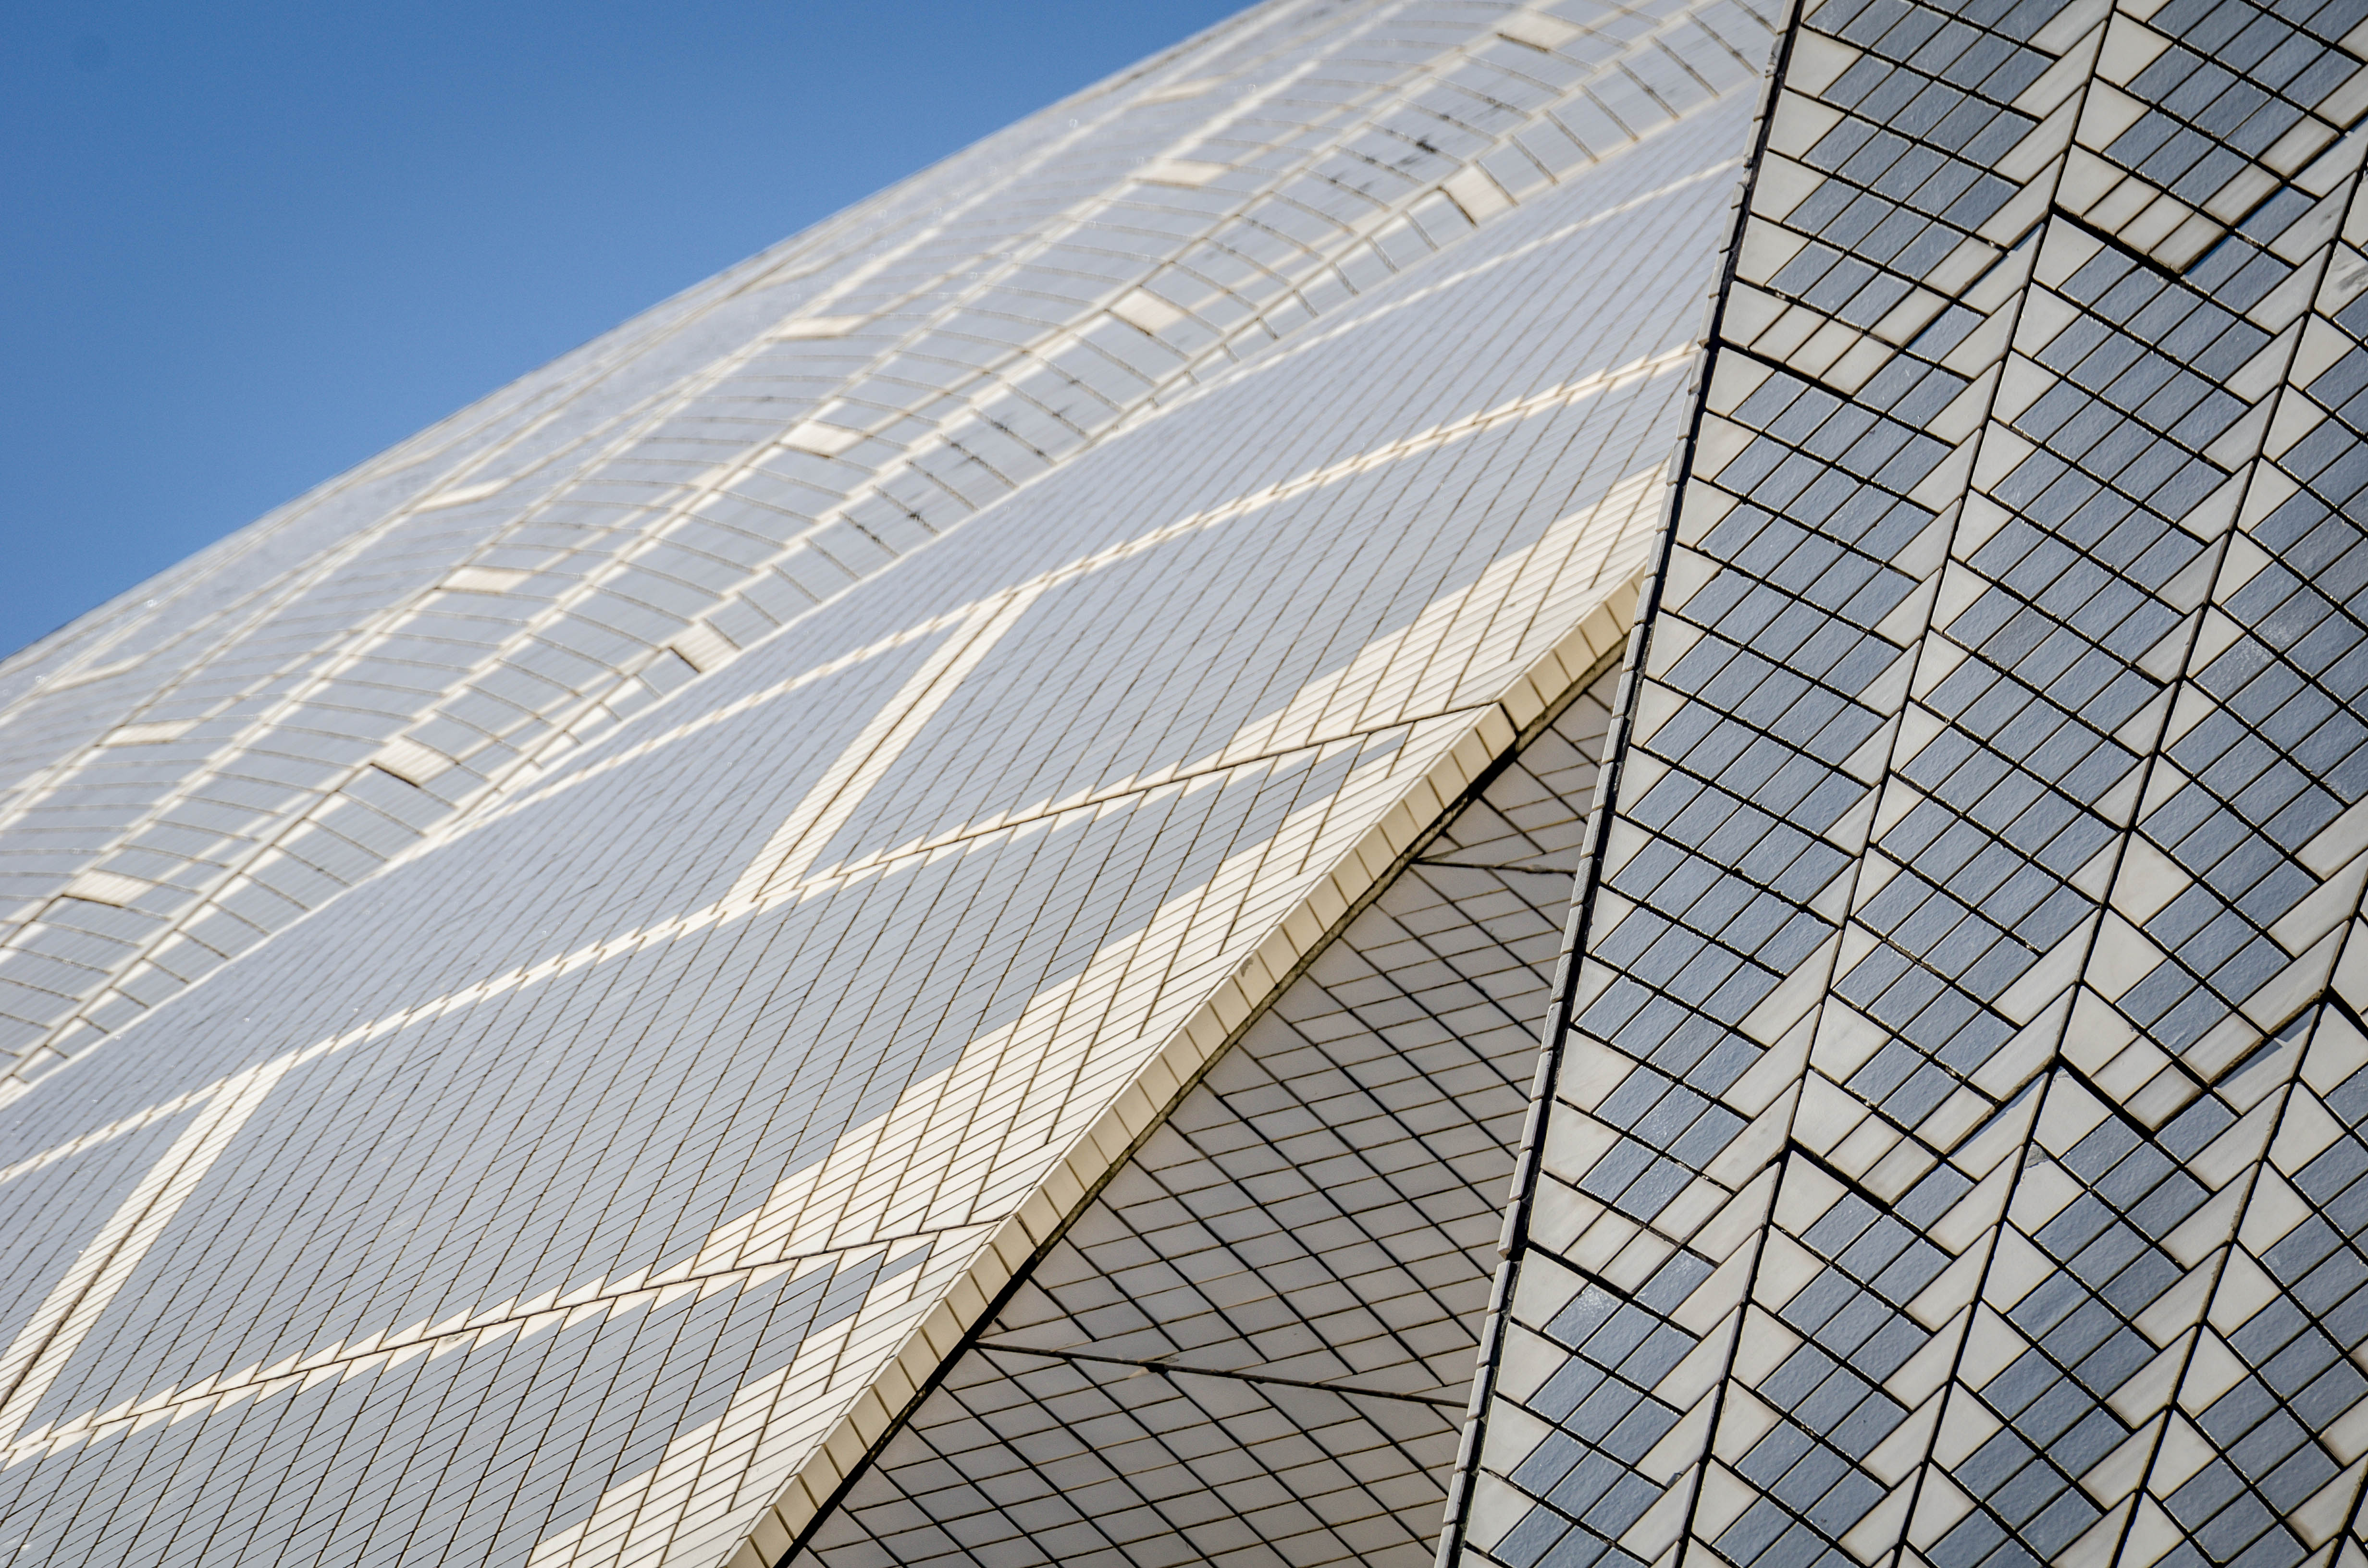 Architecture ae 390 sydney opera house - Houses with ceramic tile roofing ...